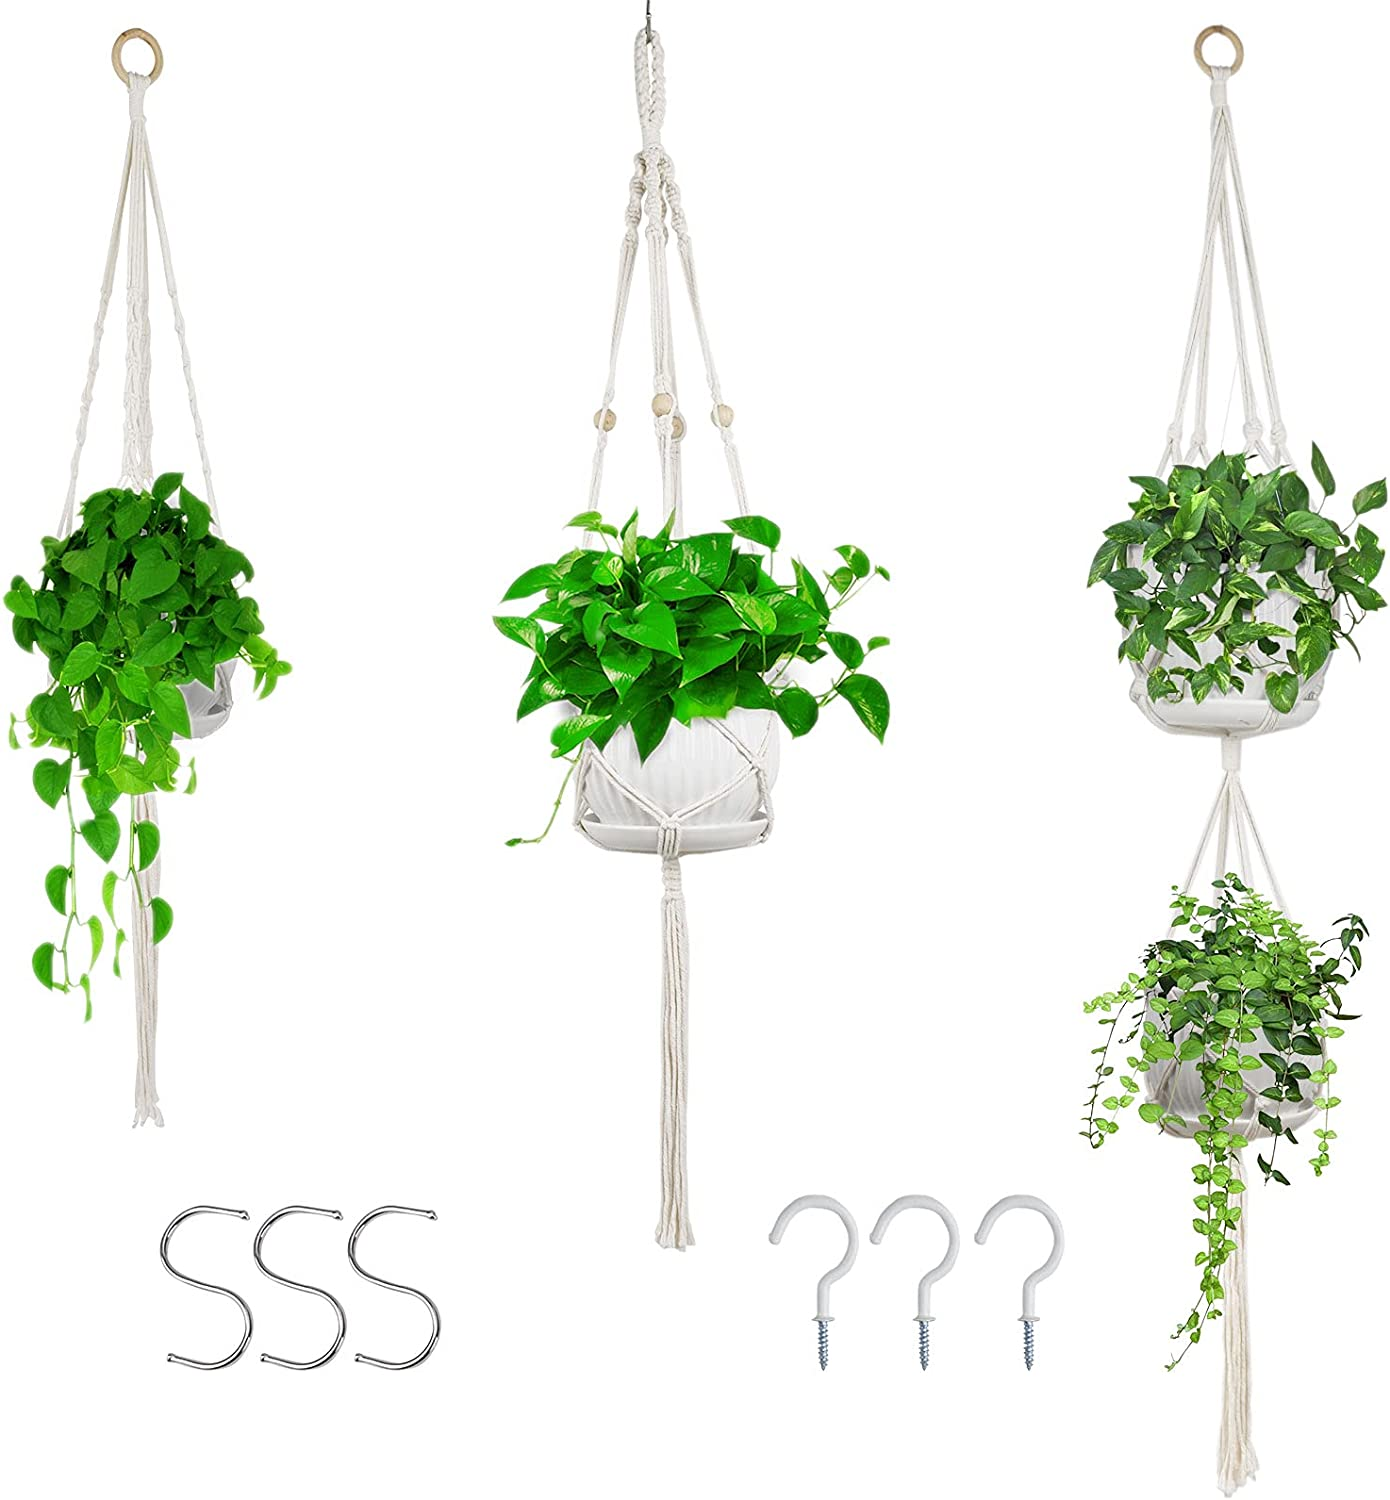 Macrame Plant Hanger Hangers Safety and trust Planters Indoor 5 ☆ very popular Hanging Ind